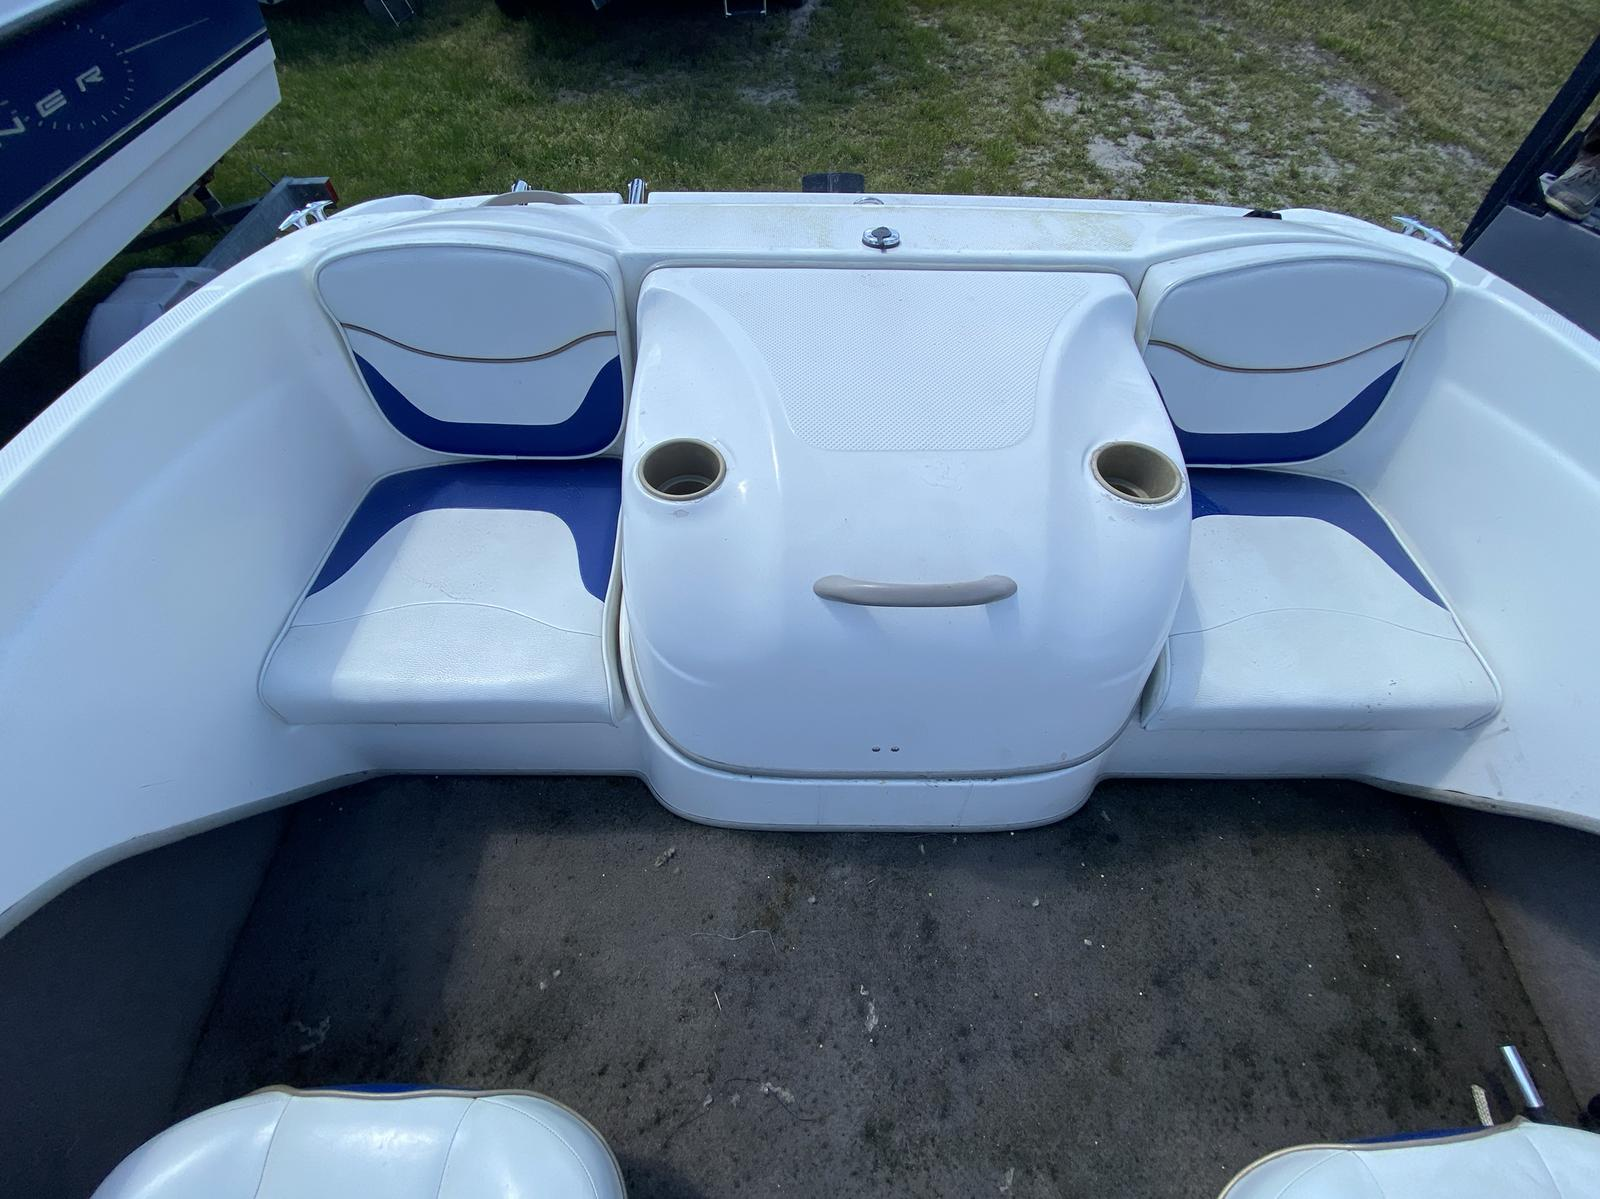 2003 Bayliner boat for sale, model of the boat is 175 Bowrider & Image # 10 of 10